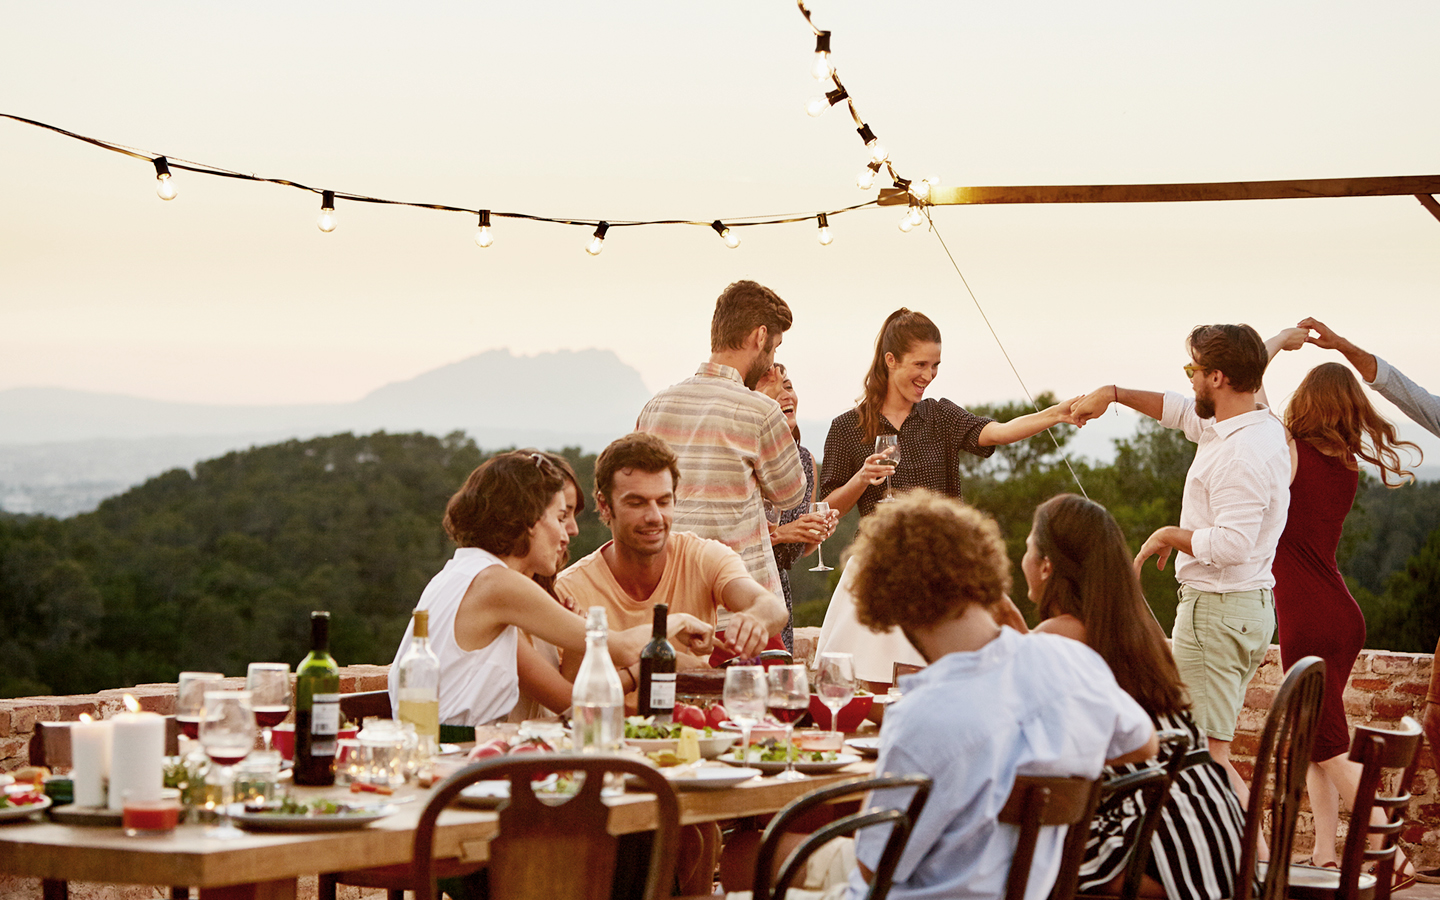 Friends dance and gather around table to eat